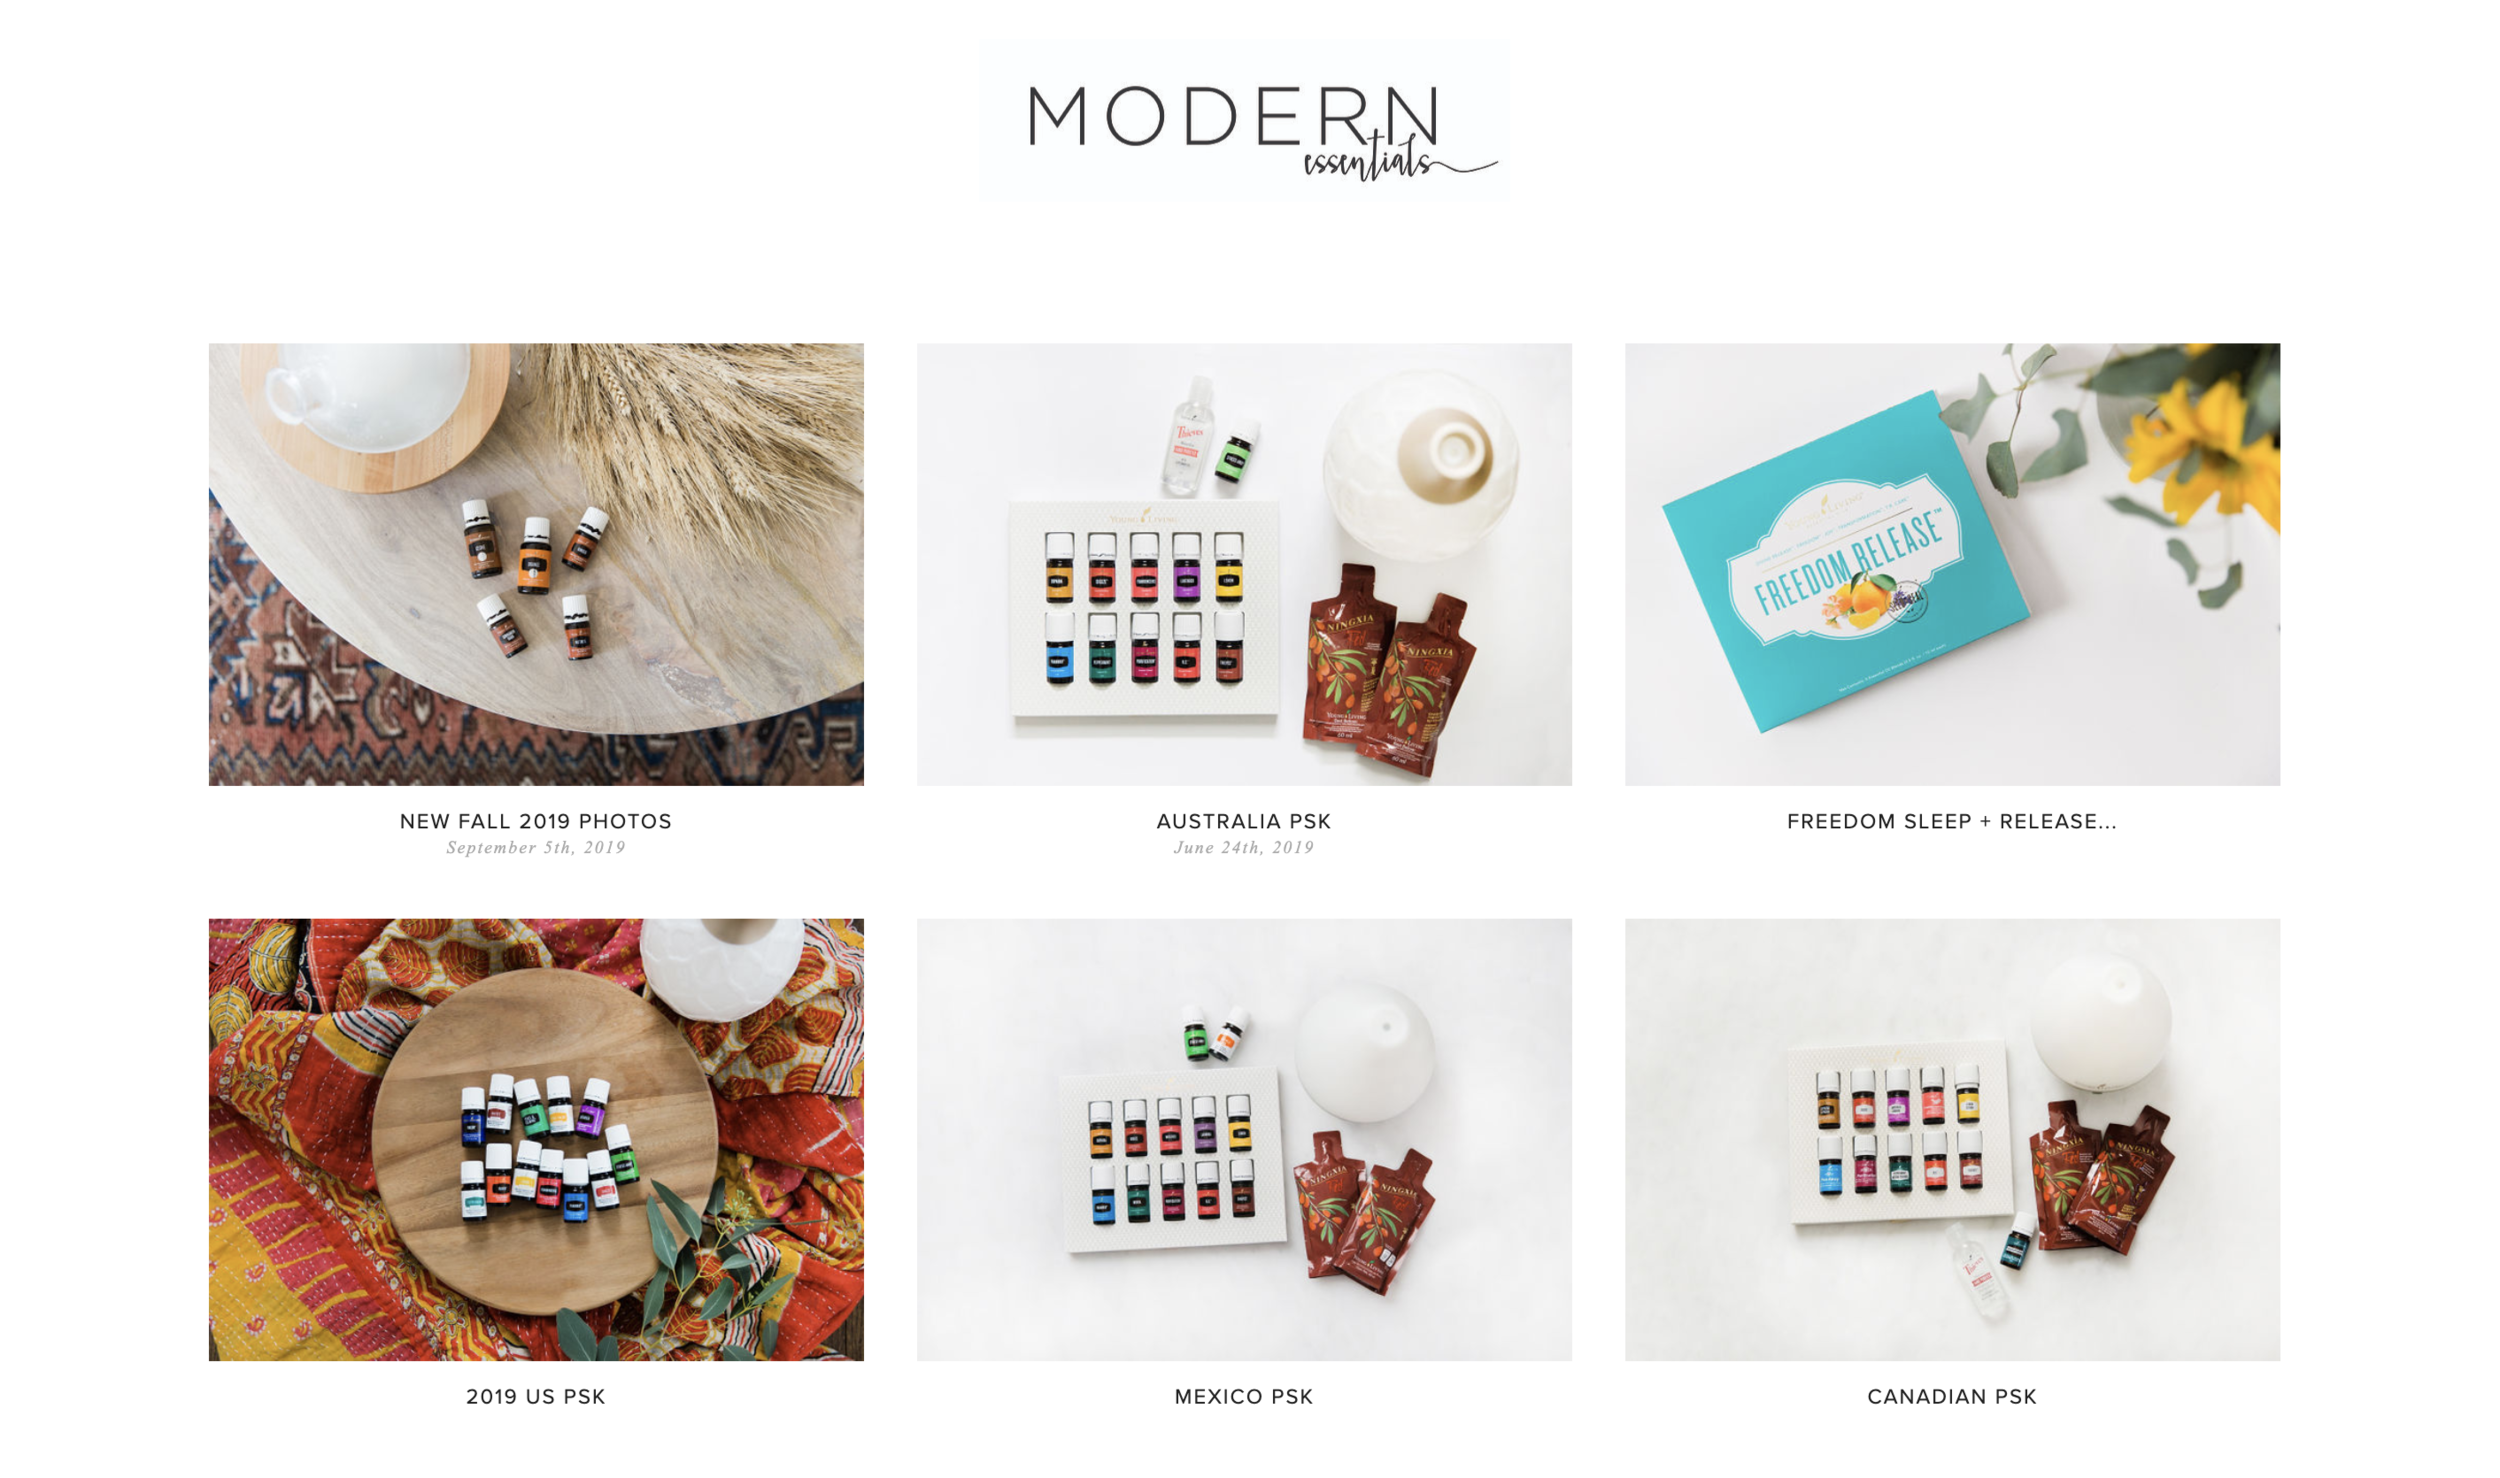 MODERN GRAPHIC + PHOTO COLLECTION - Access to modern graphics and photos for you to use!